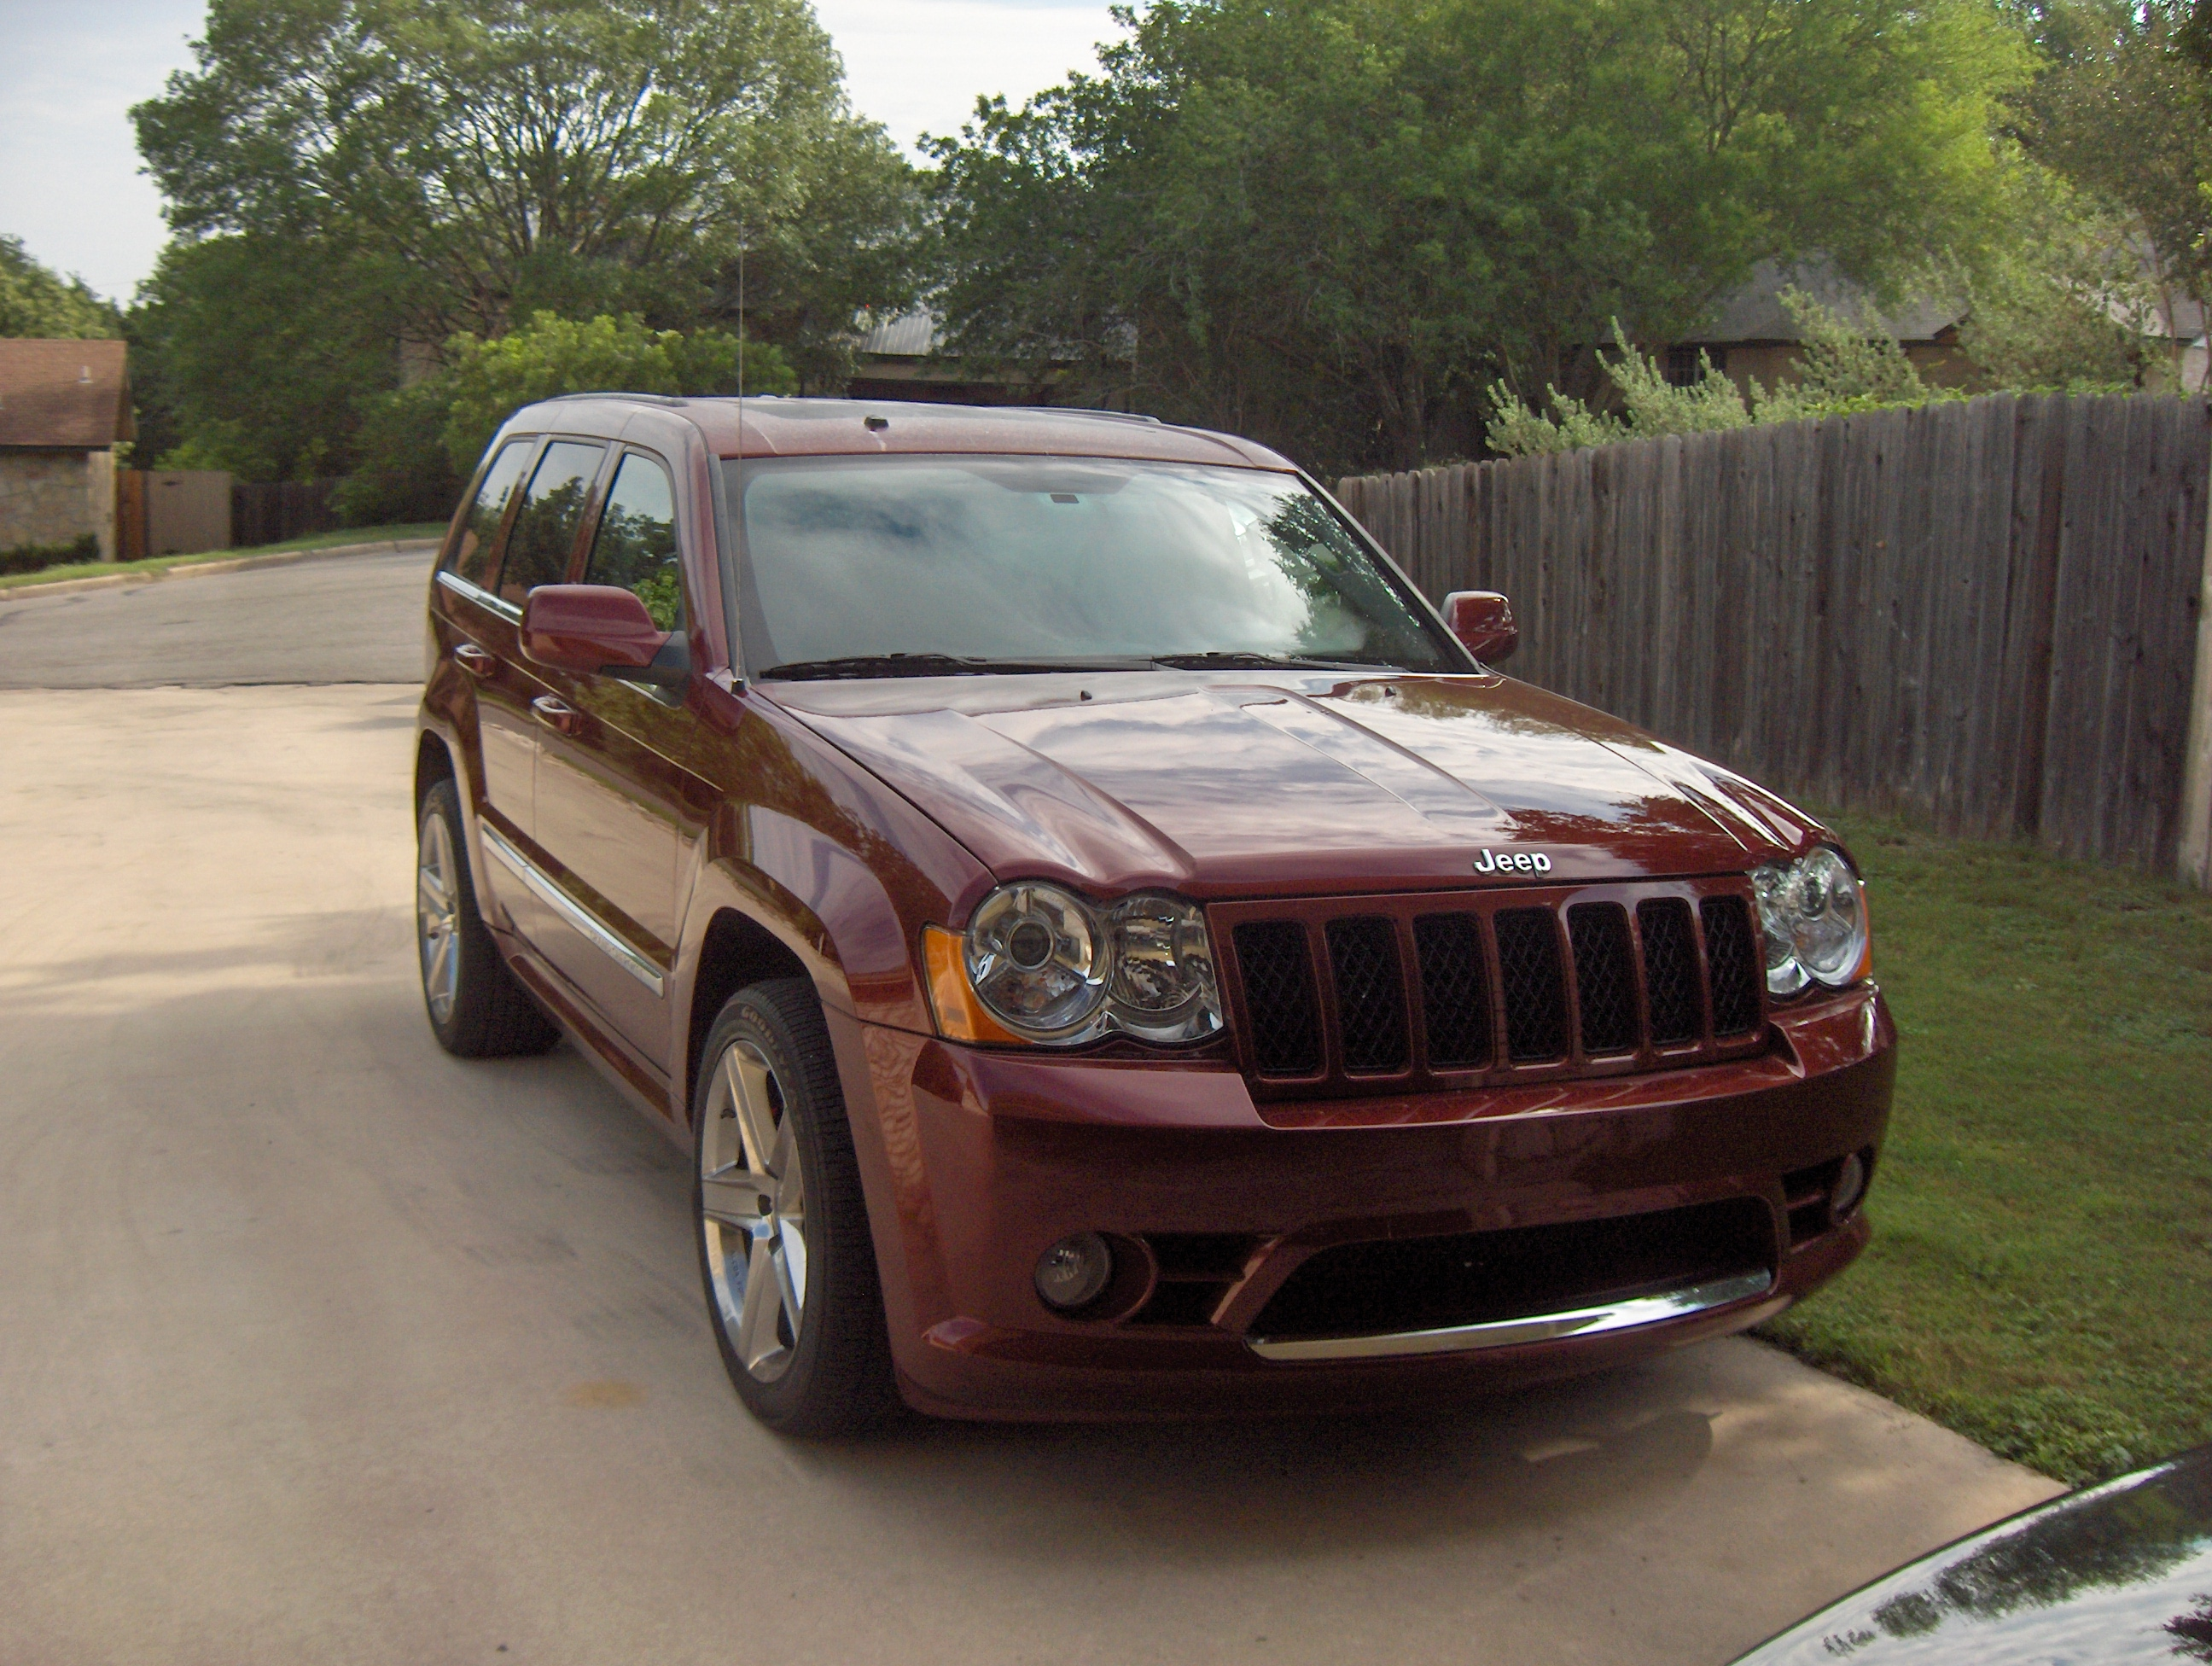 2009 jeep grand cherokee srt8 review autosavant autosavant. Black Bedroom Furniture Sets. Home Design Ideas